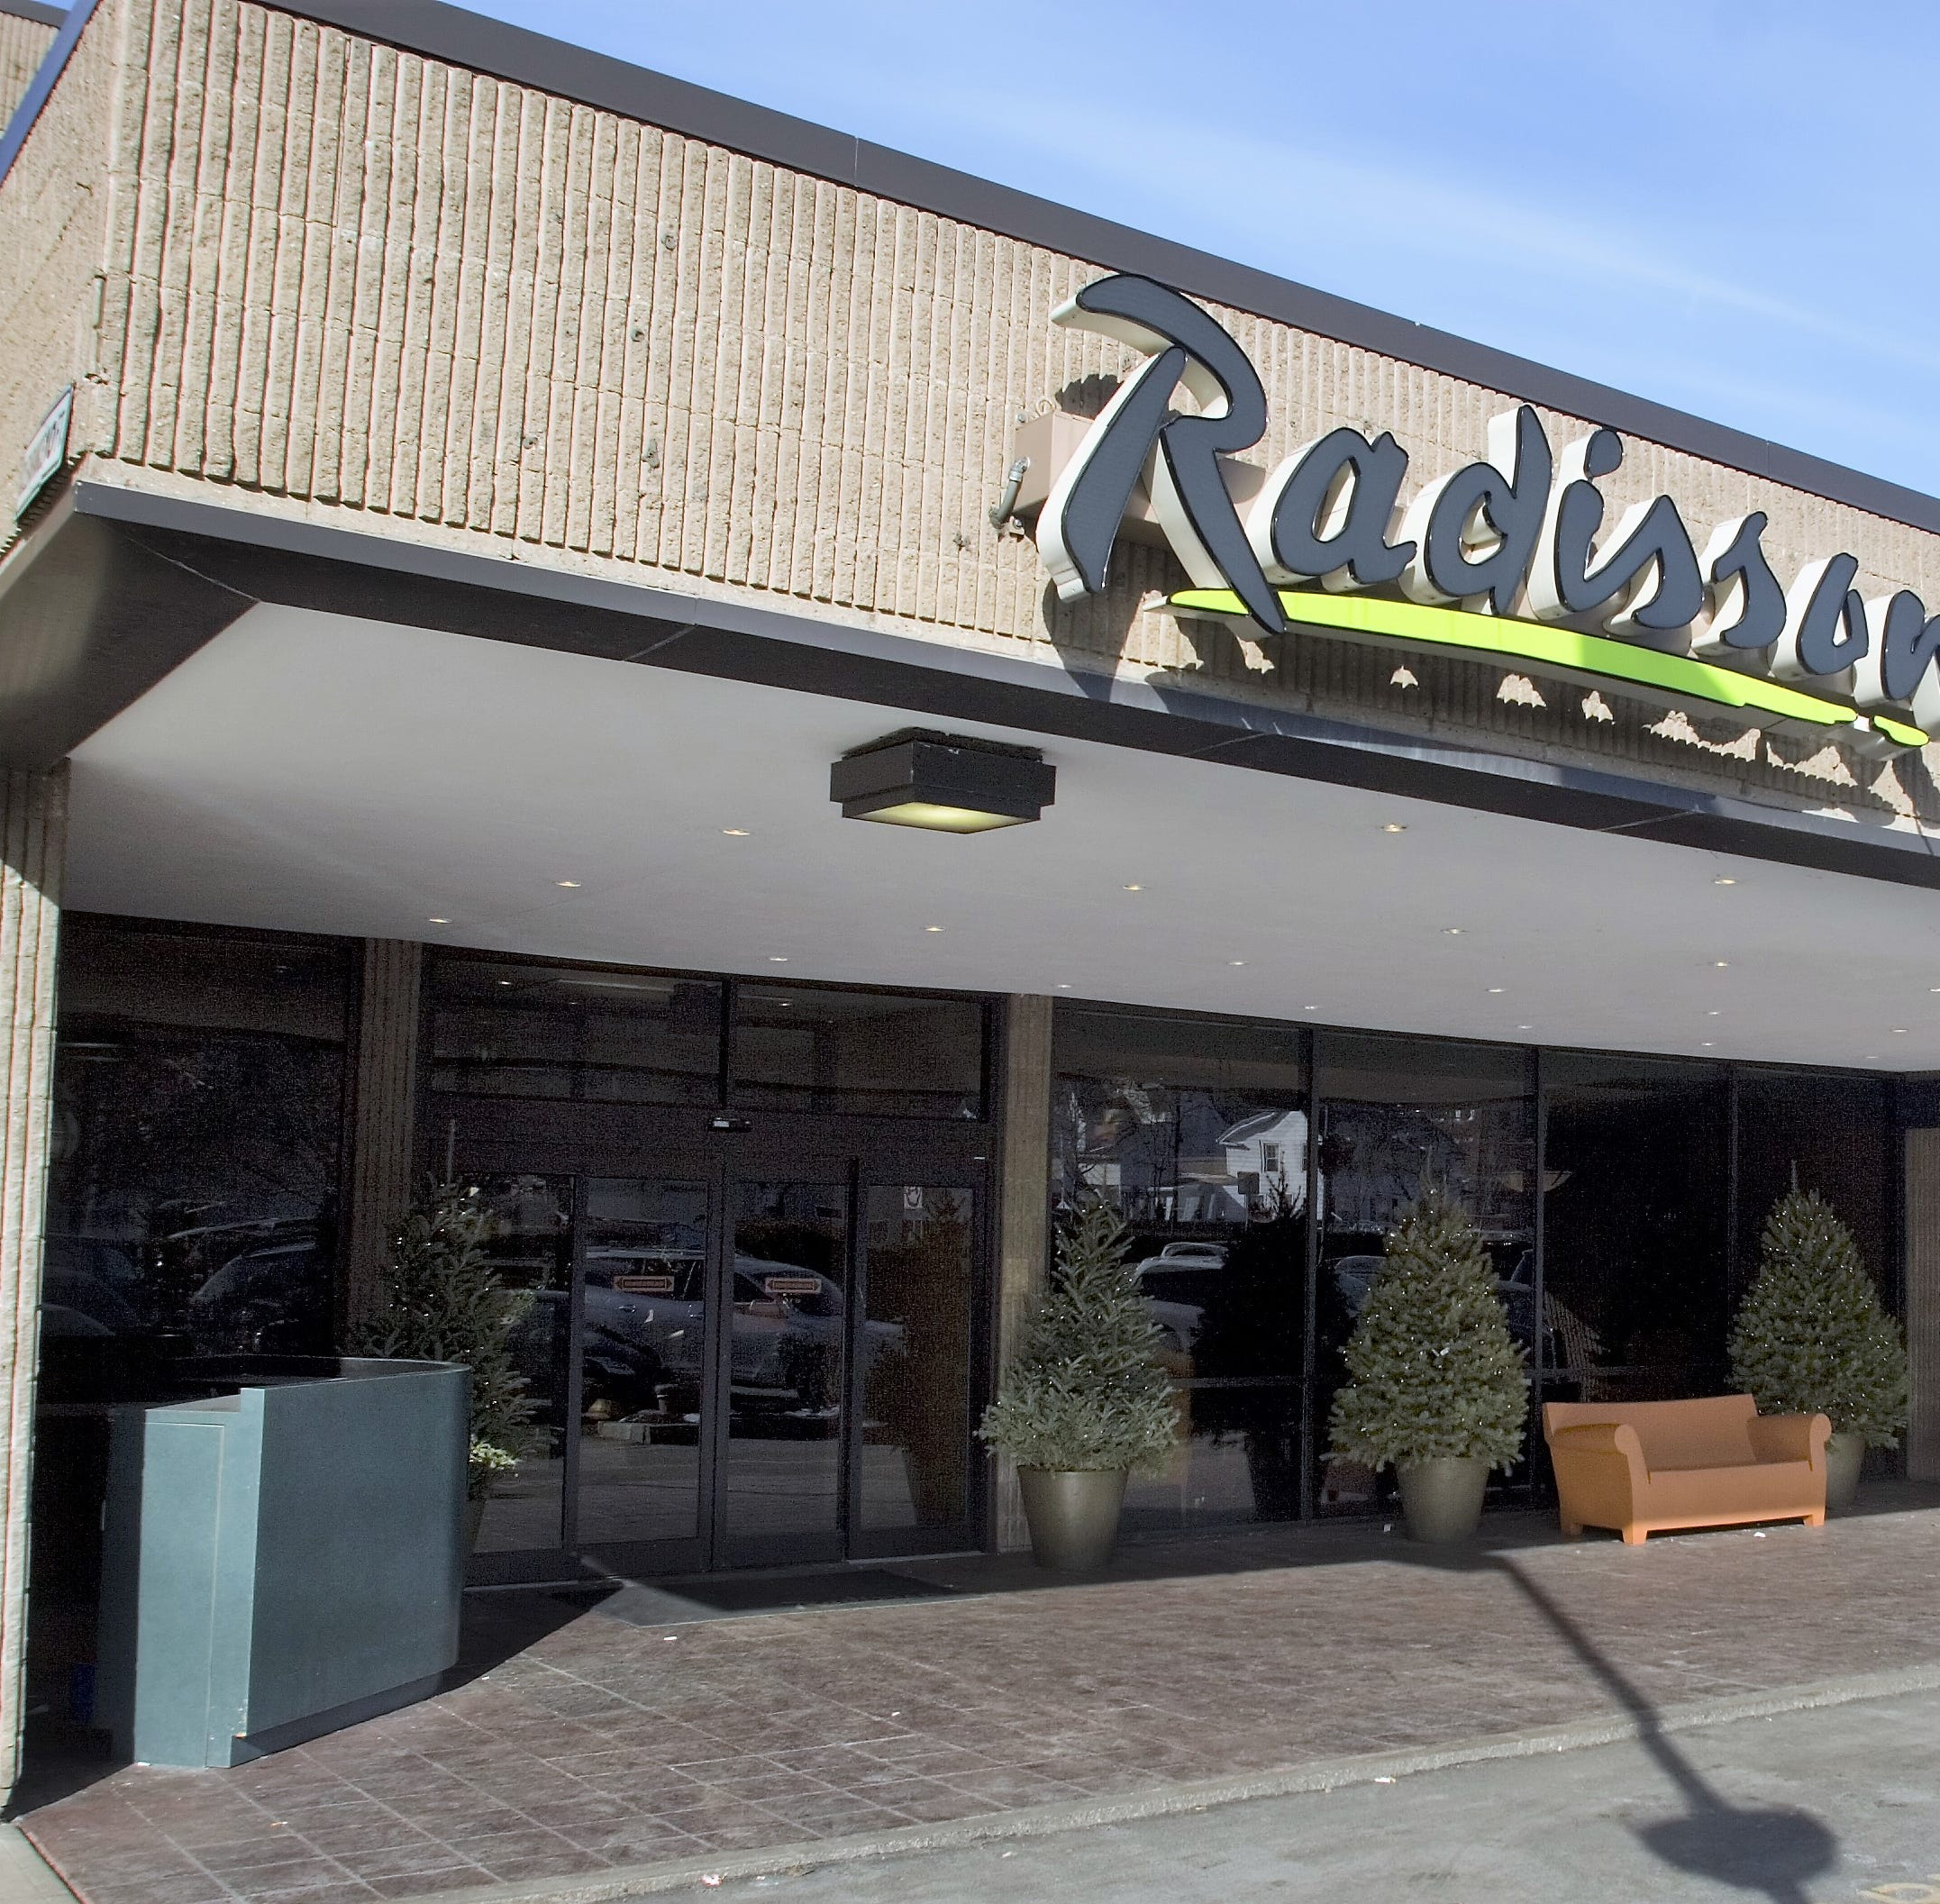 Biz briefs: Accolades for Radisson Hotel in Corning